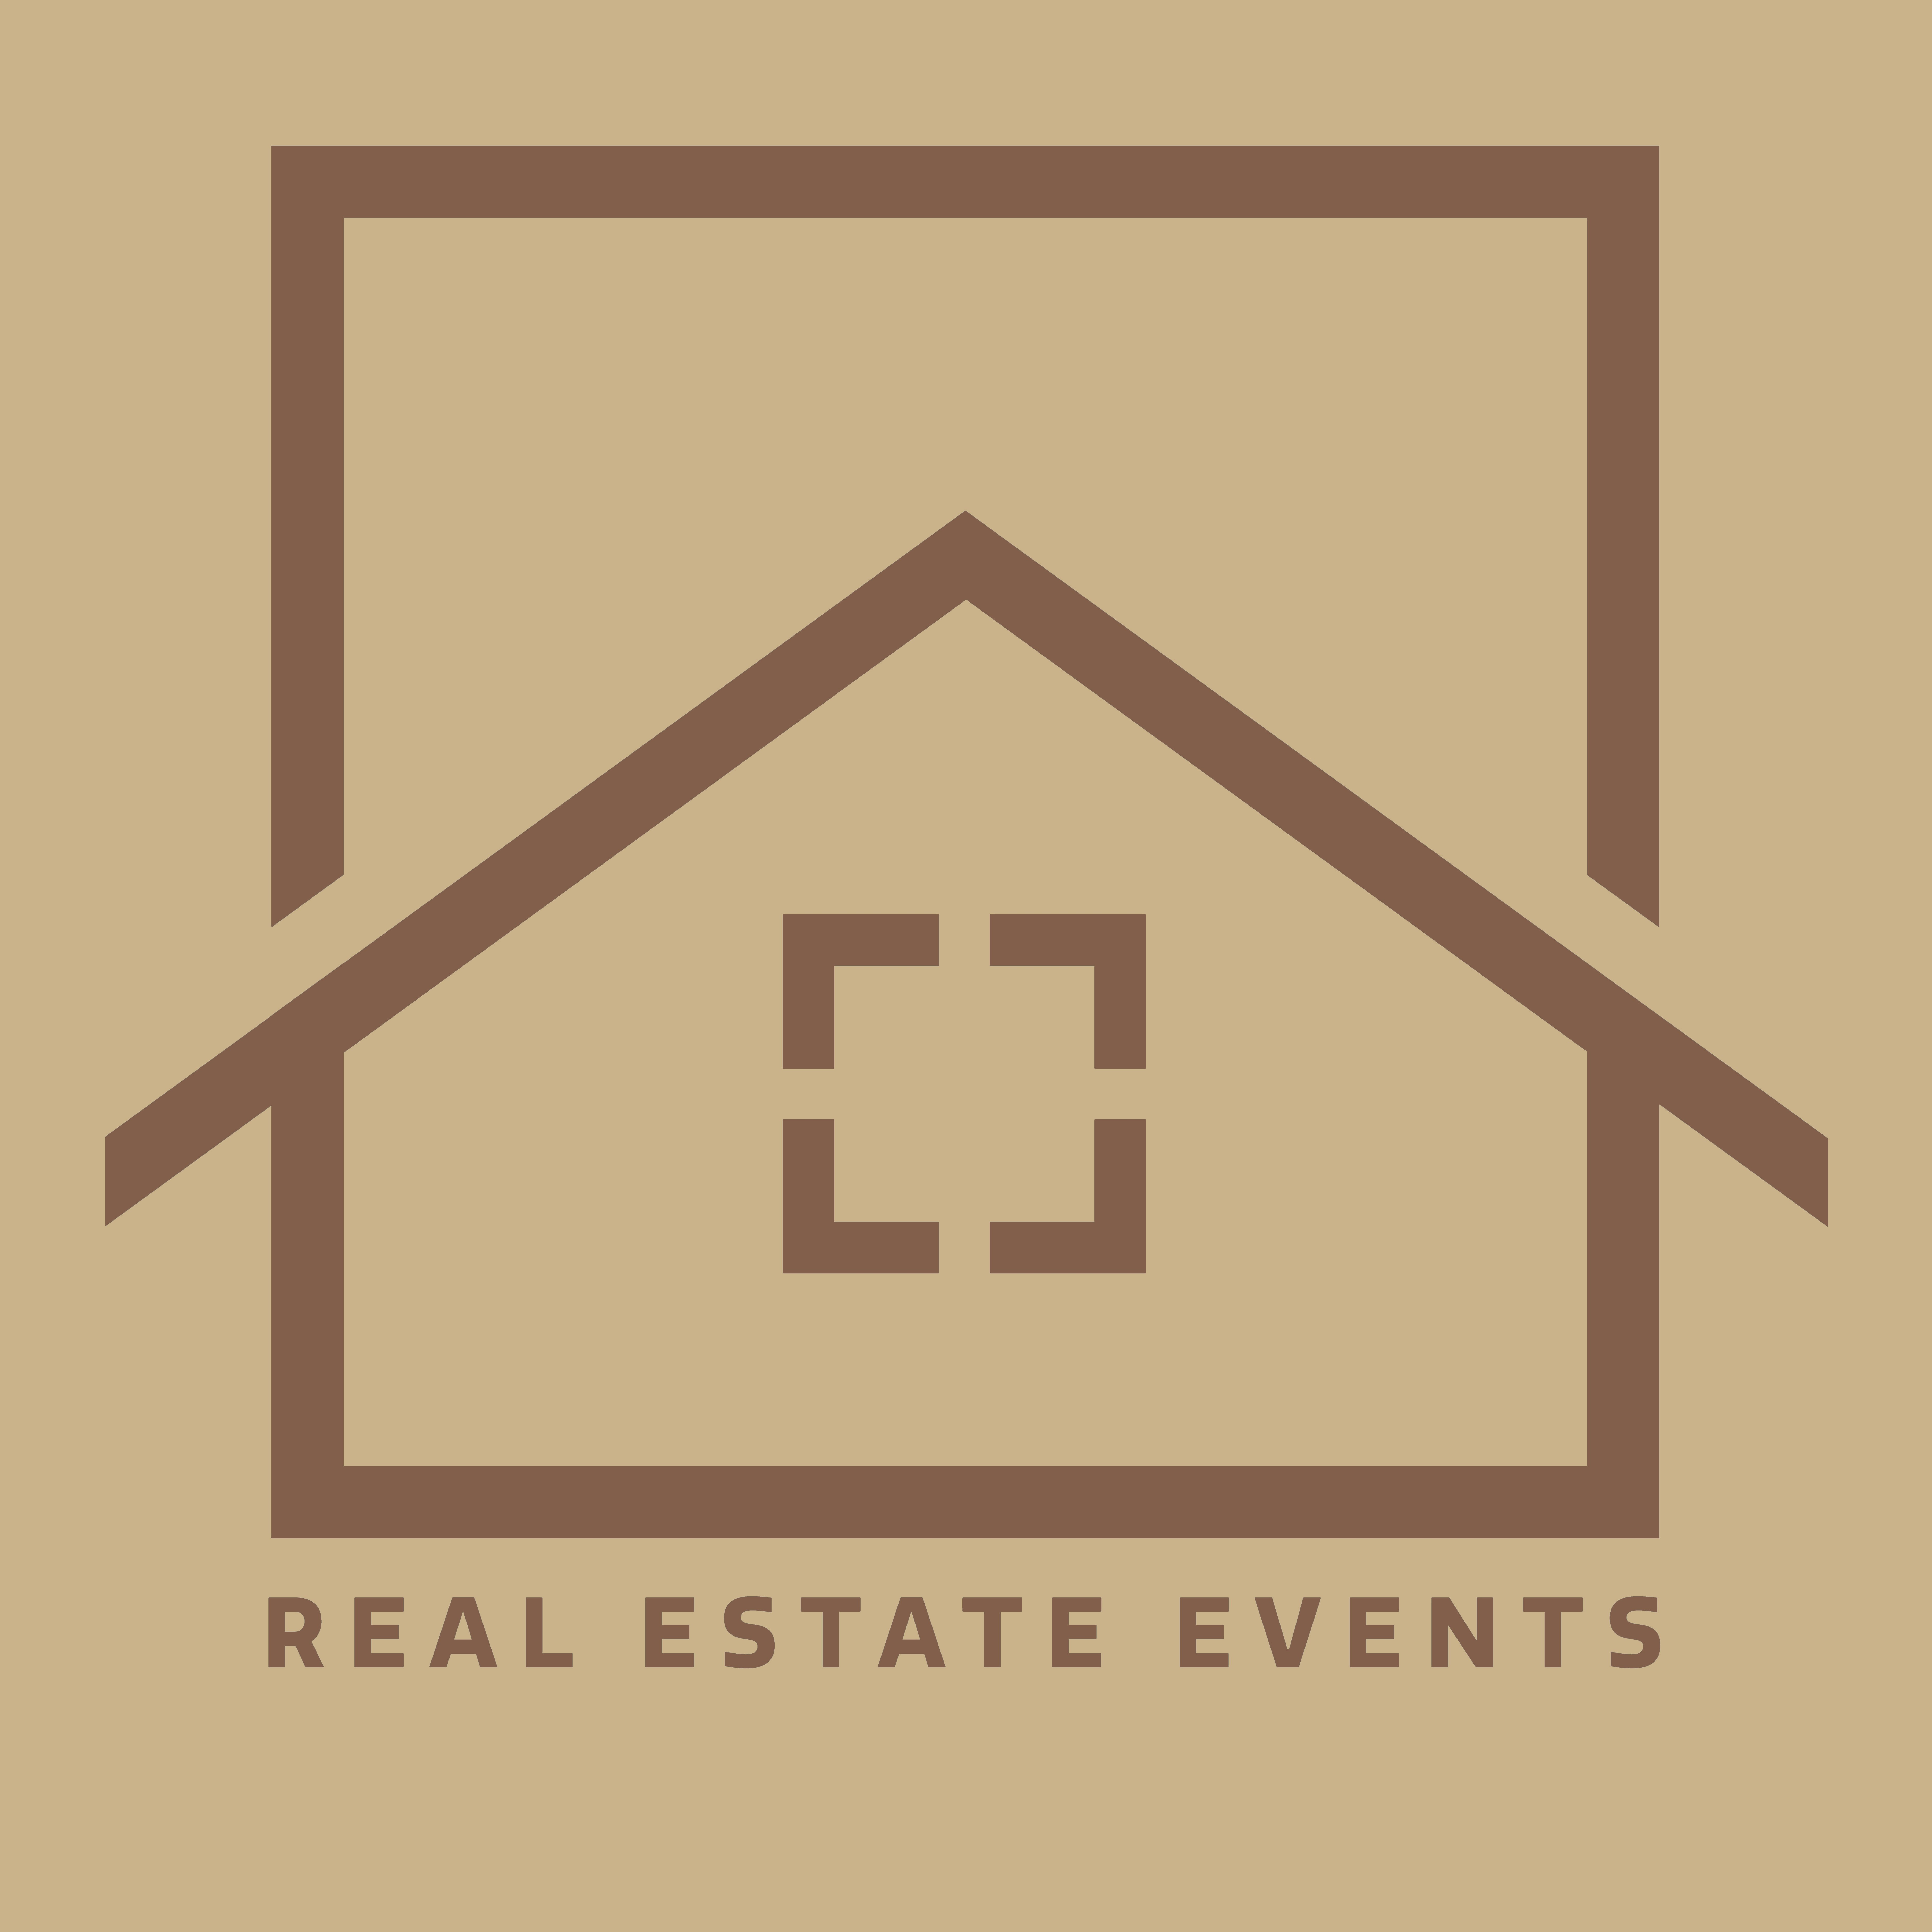 Real Estate Events Logo Design - PIC2MOTION